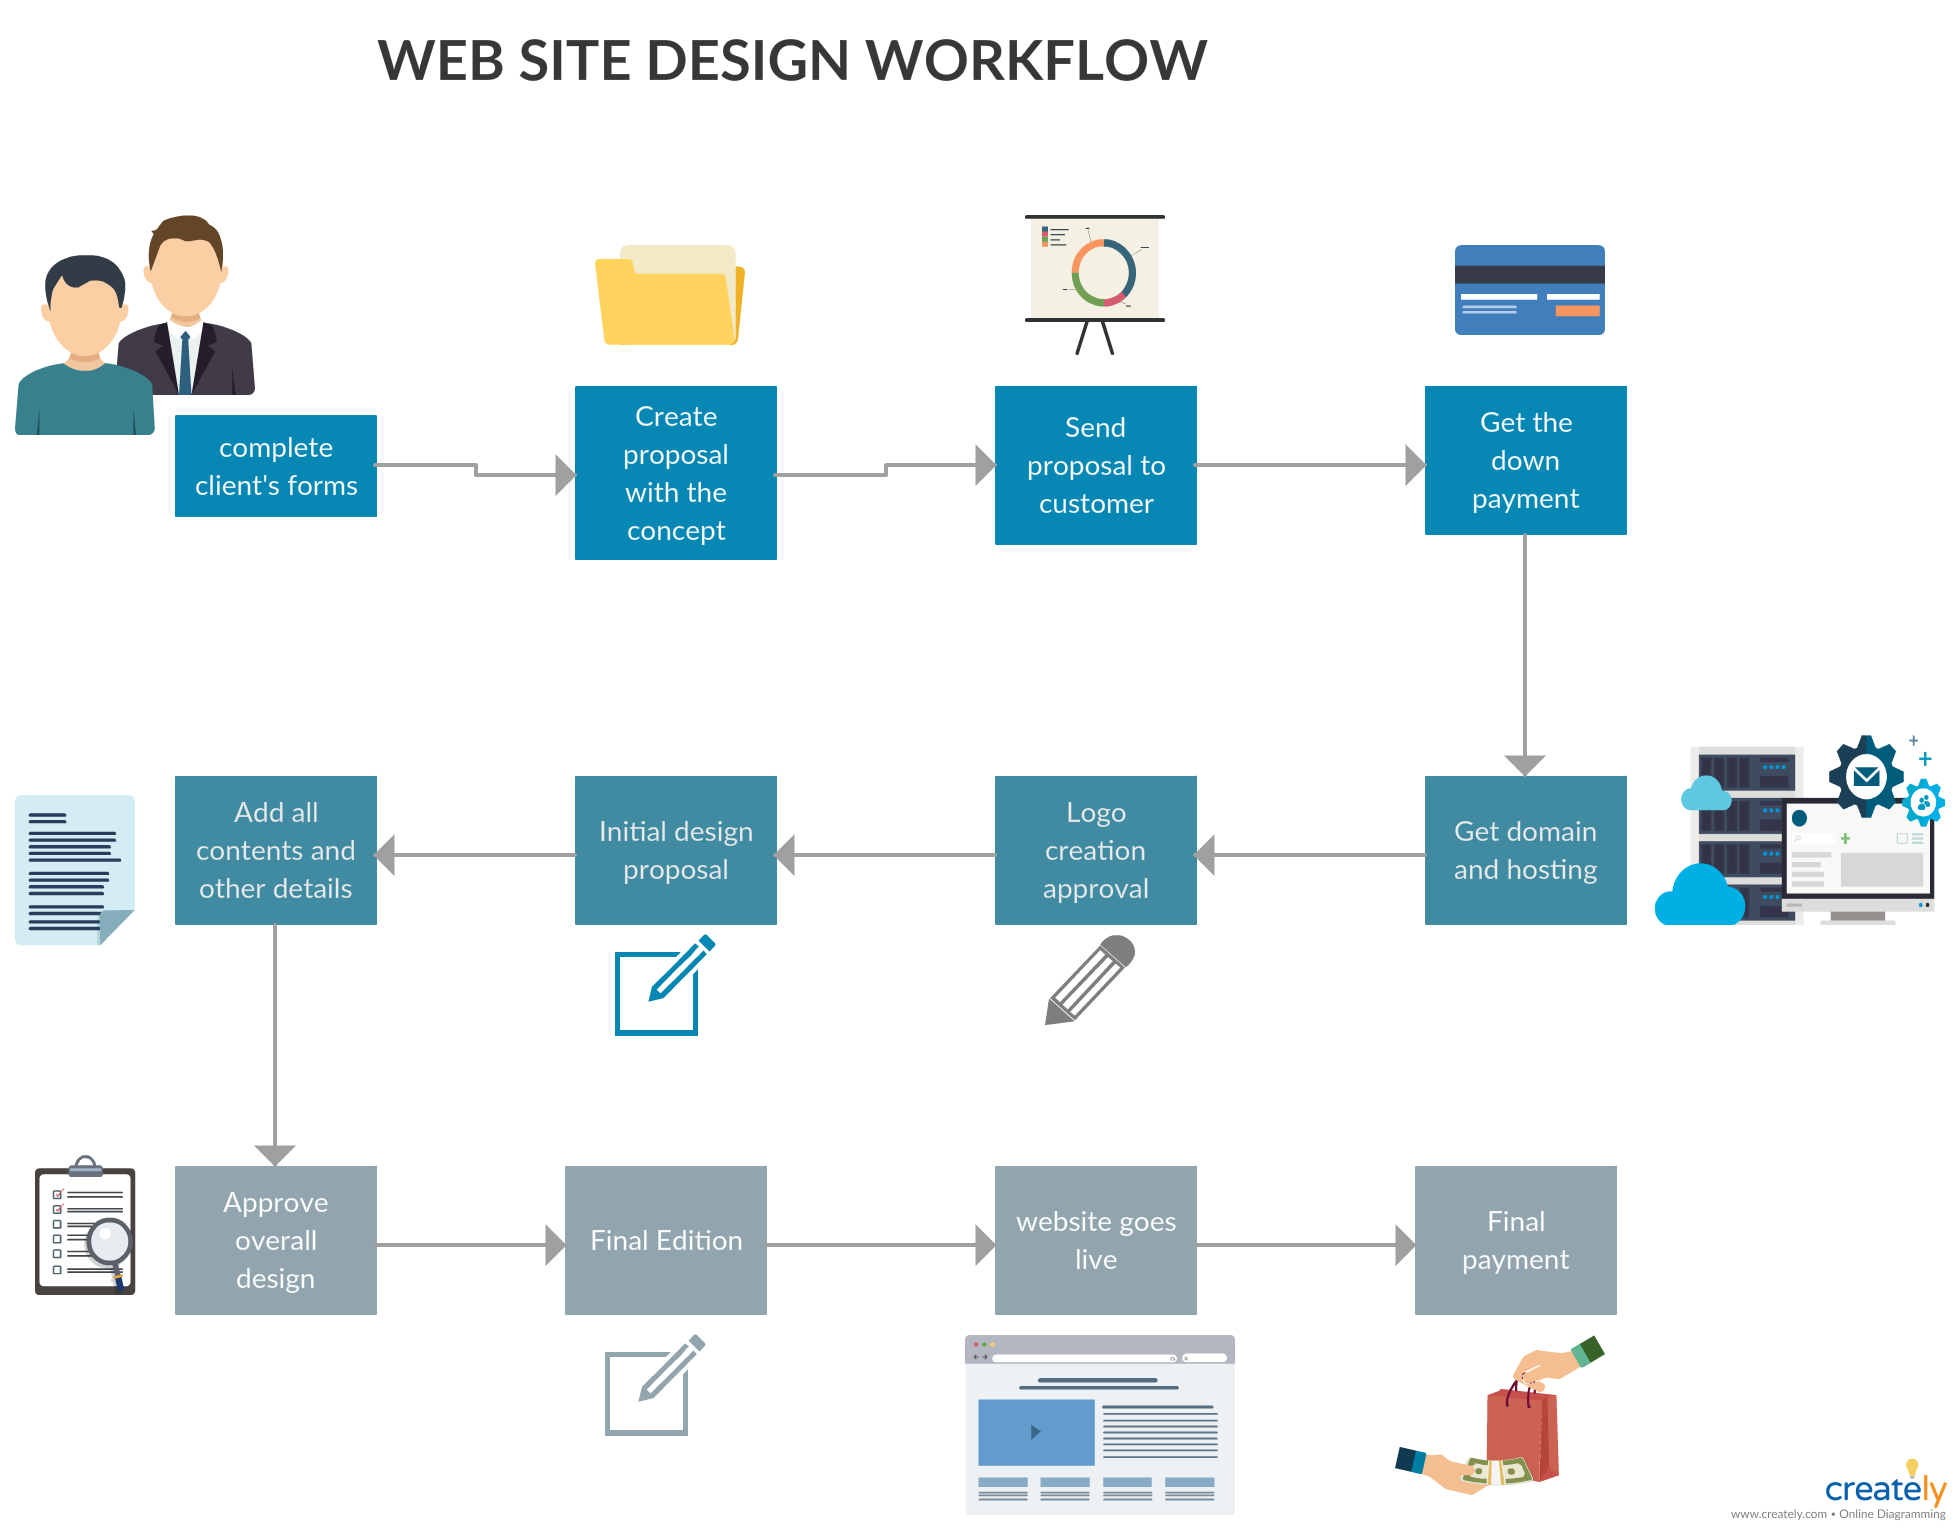 medium resolution of web site design workflow a workflow diagram for website designing this diagram shows the